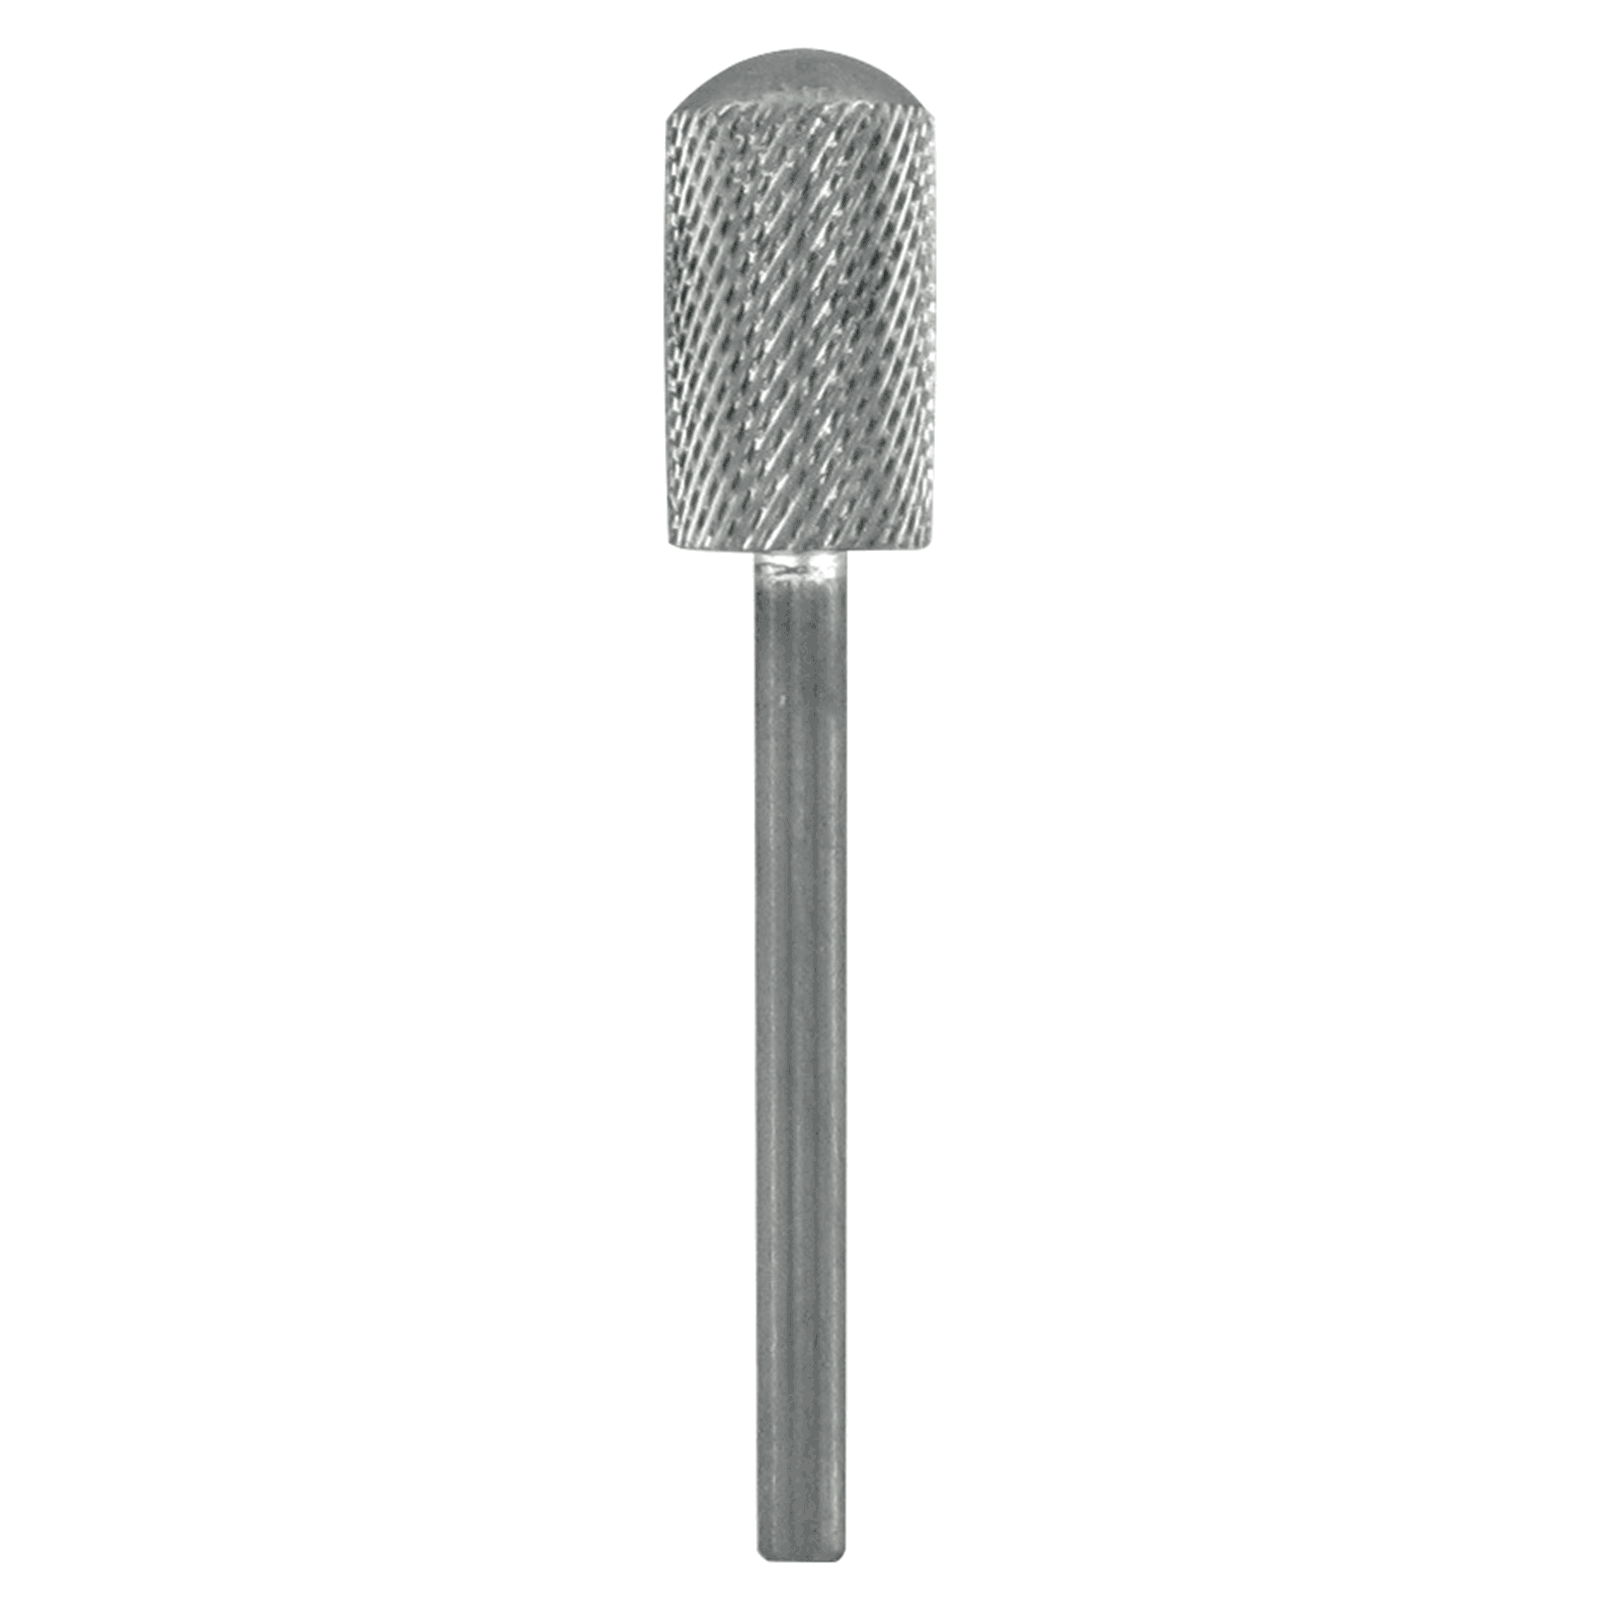 Carbide Safety Bit - Coarse Grit